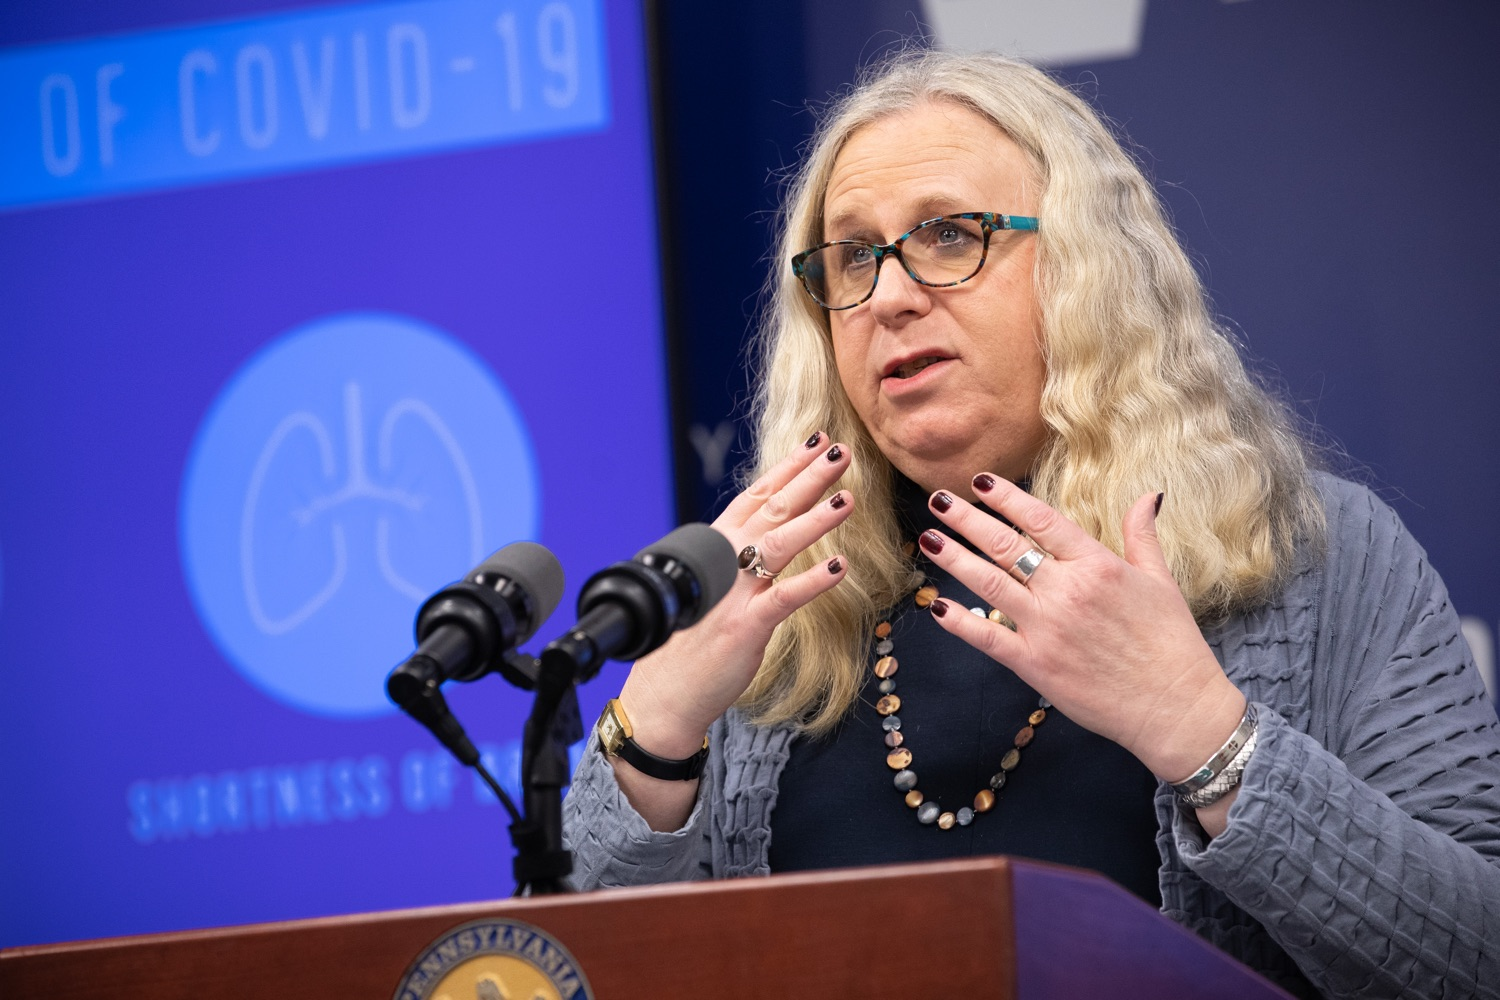 "<a href=""https://filesource.wostreaming.net/commonwealthofpa/photo/17894_doh_covid19_update_dz_0012.jpg"" target=""_blank"">⇣ Download Photo<br></a>Secretary of Health Dr. Rachel Levine speaking at the virtual press conference.  The Pennsylvania Department of Health today confirmed as of 12:00 a.m., March 19, that there are 52 additional positive cases of COVID-19 reported, bringing the statewide total to 185. The state also reported one death, an adult from Northampton County. All people are either in isolation at home or being treated at the hospital. Harrisburg, PA- March 19, 2020"